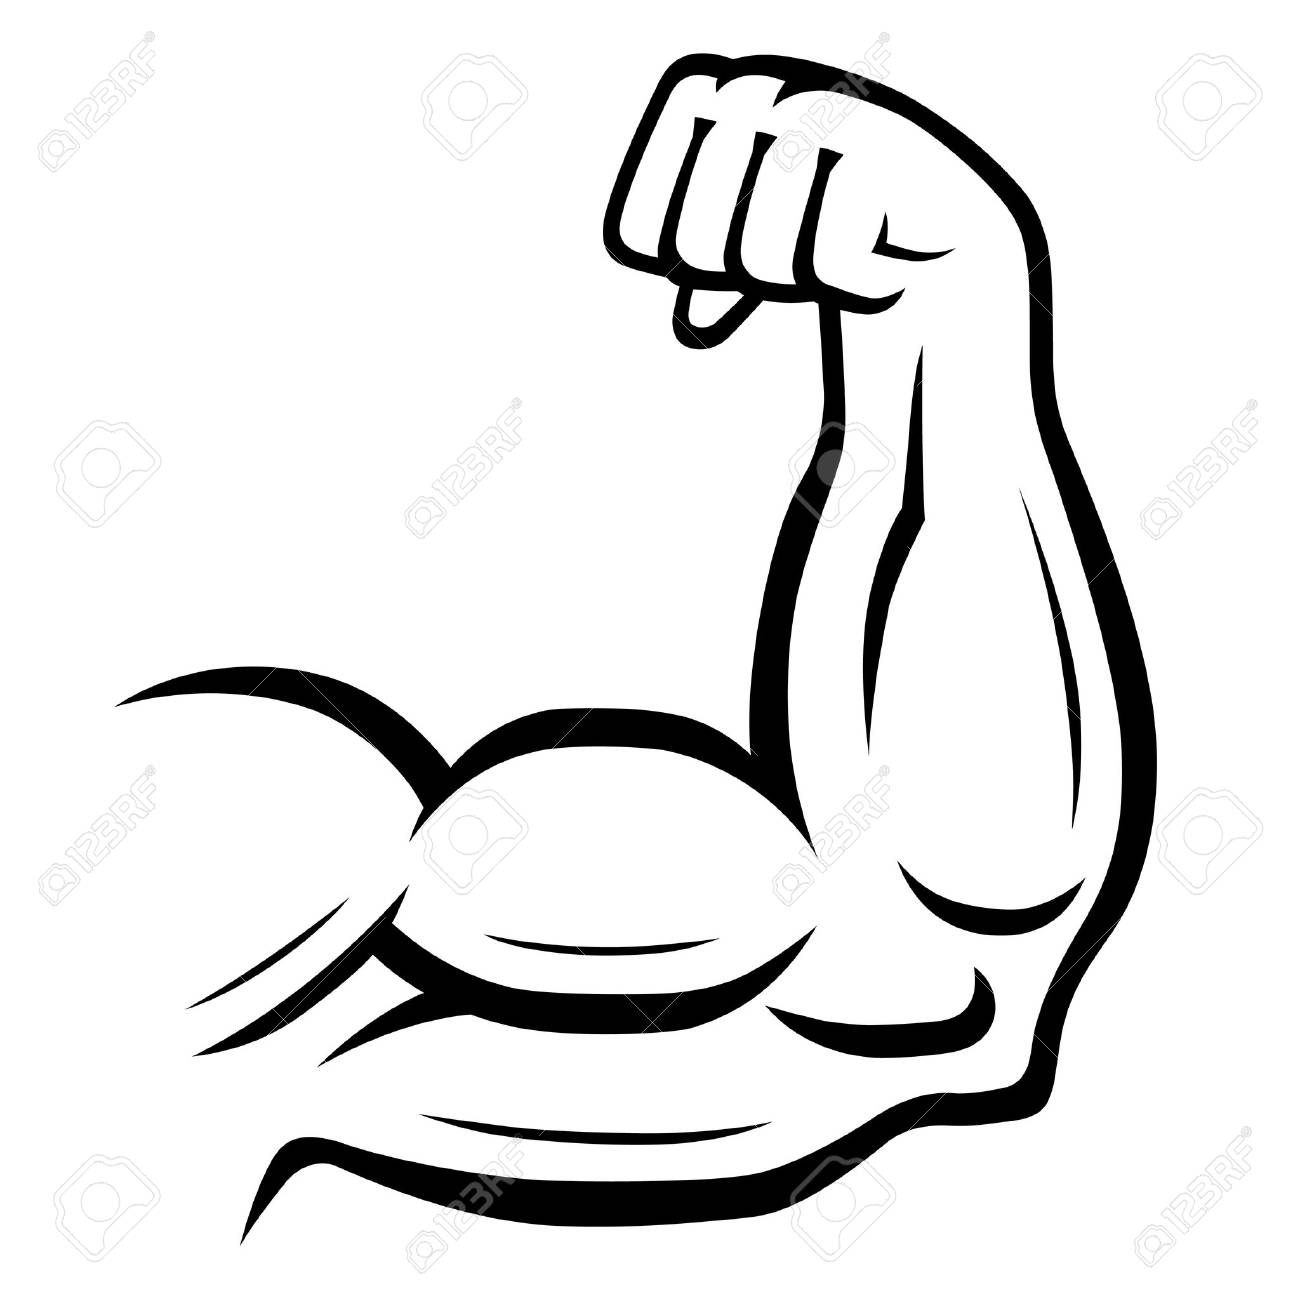 Strong arm images